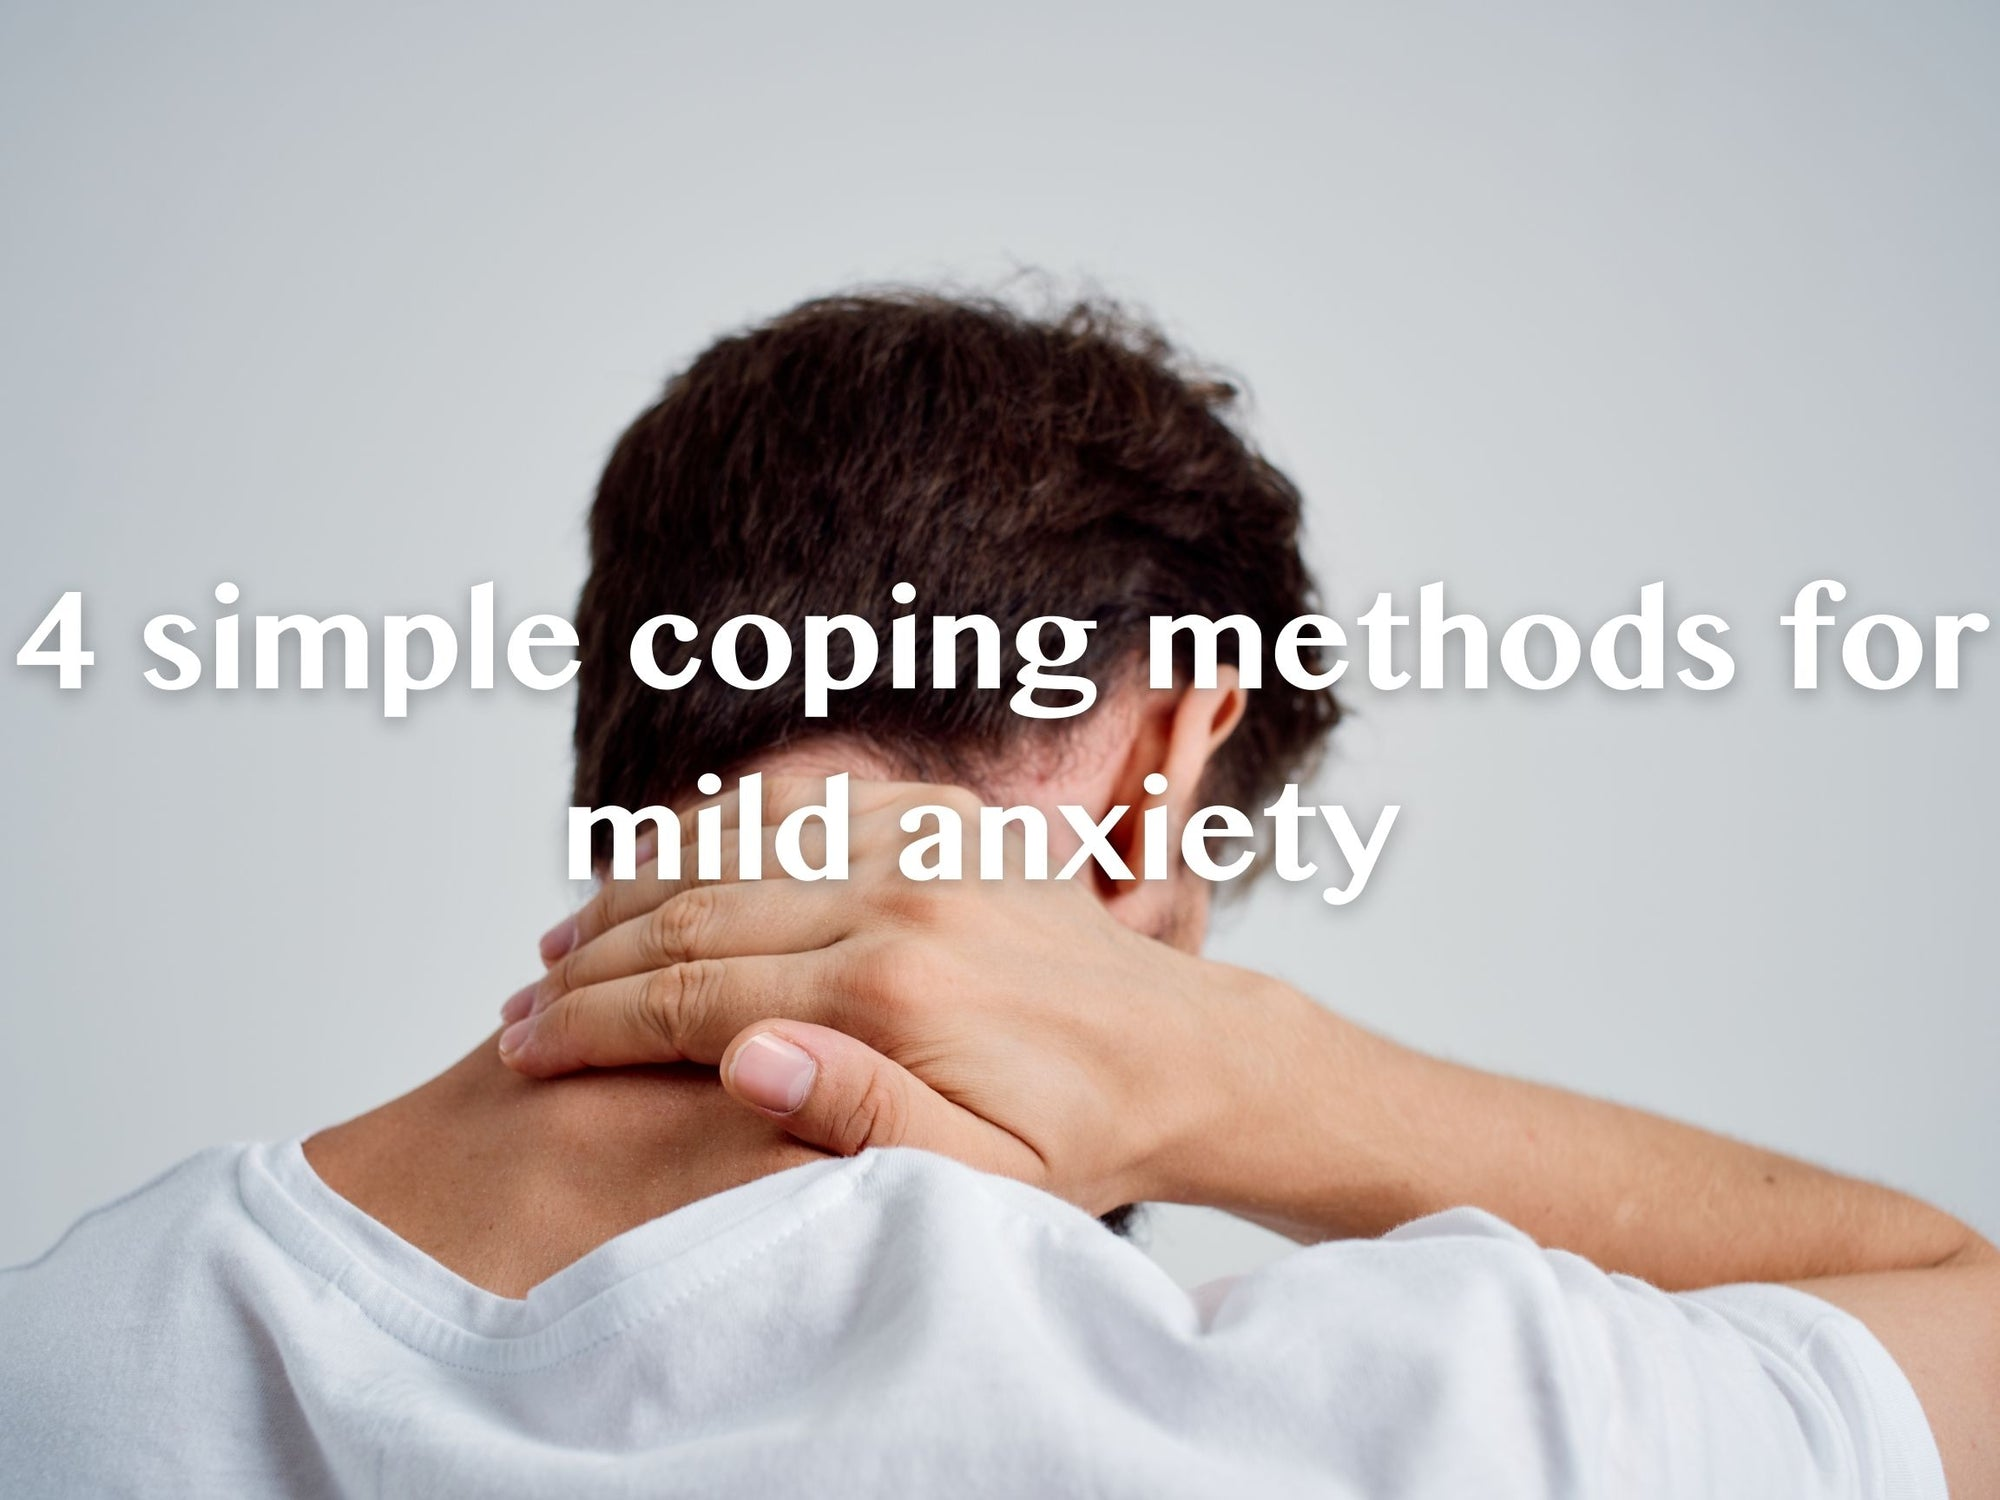 4 Simple Coping Methods for Mild Anxiety